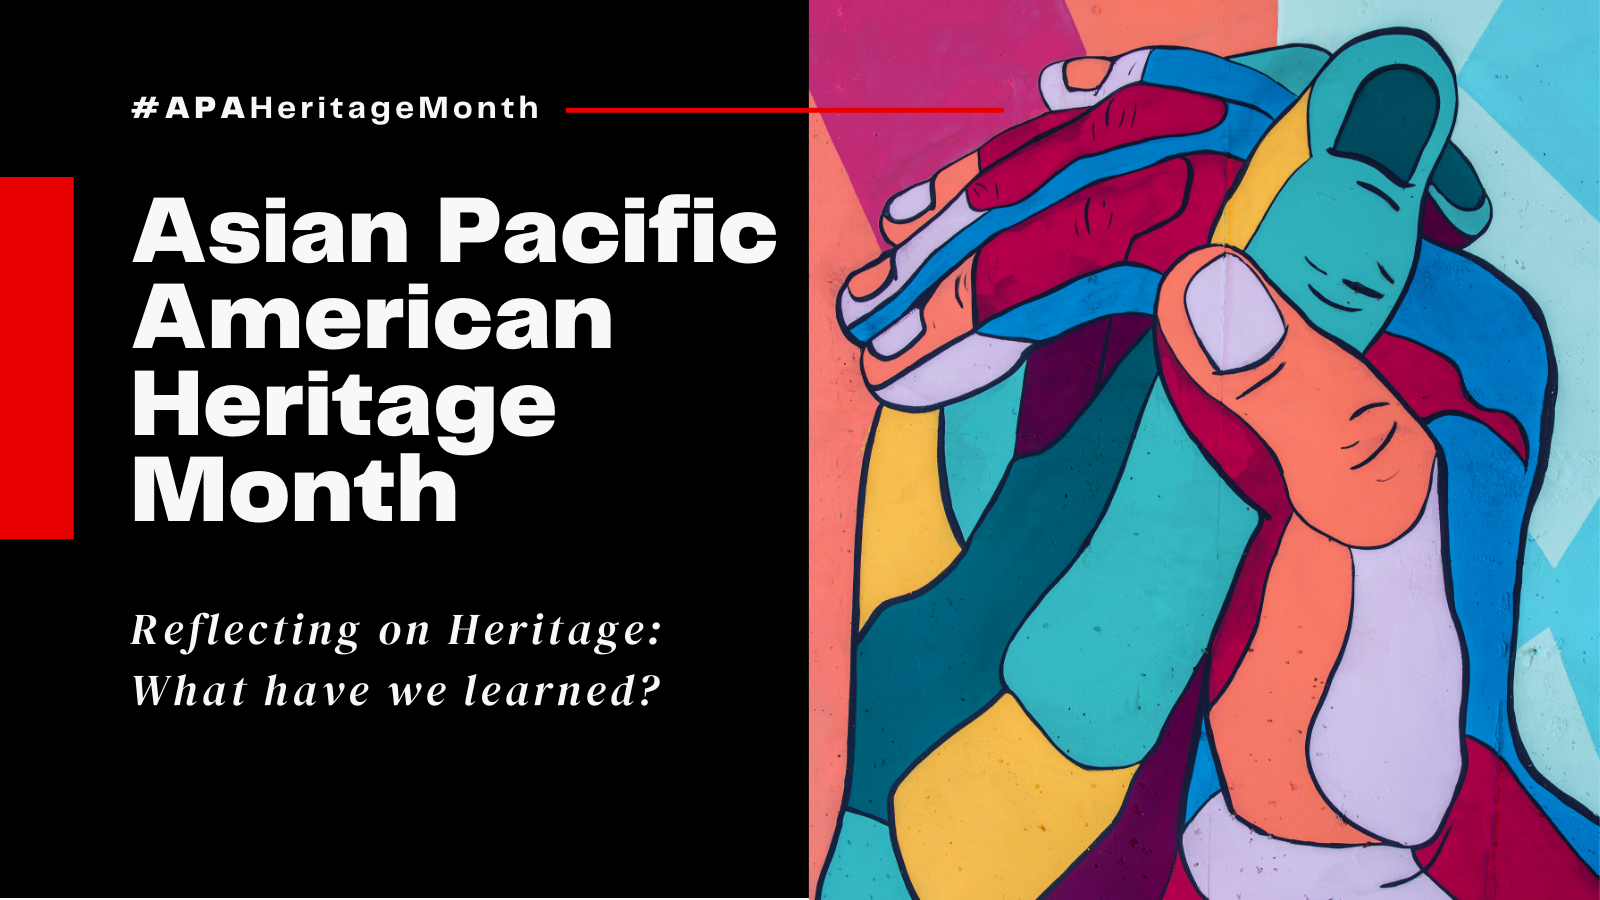 Asian Pacific Heritage Month: Reflecting on Heritage, What have we learned?